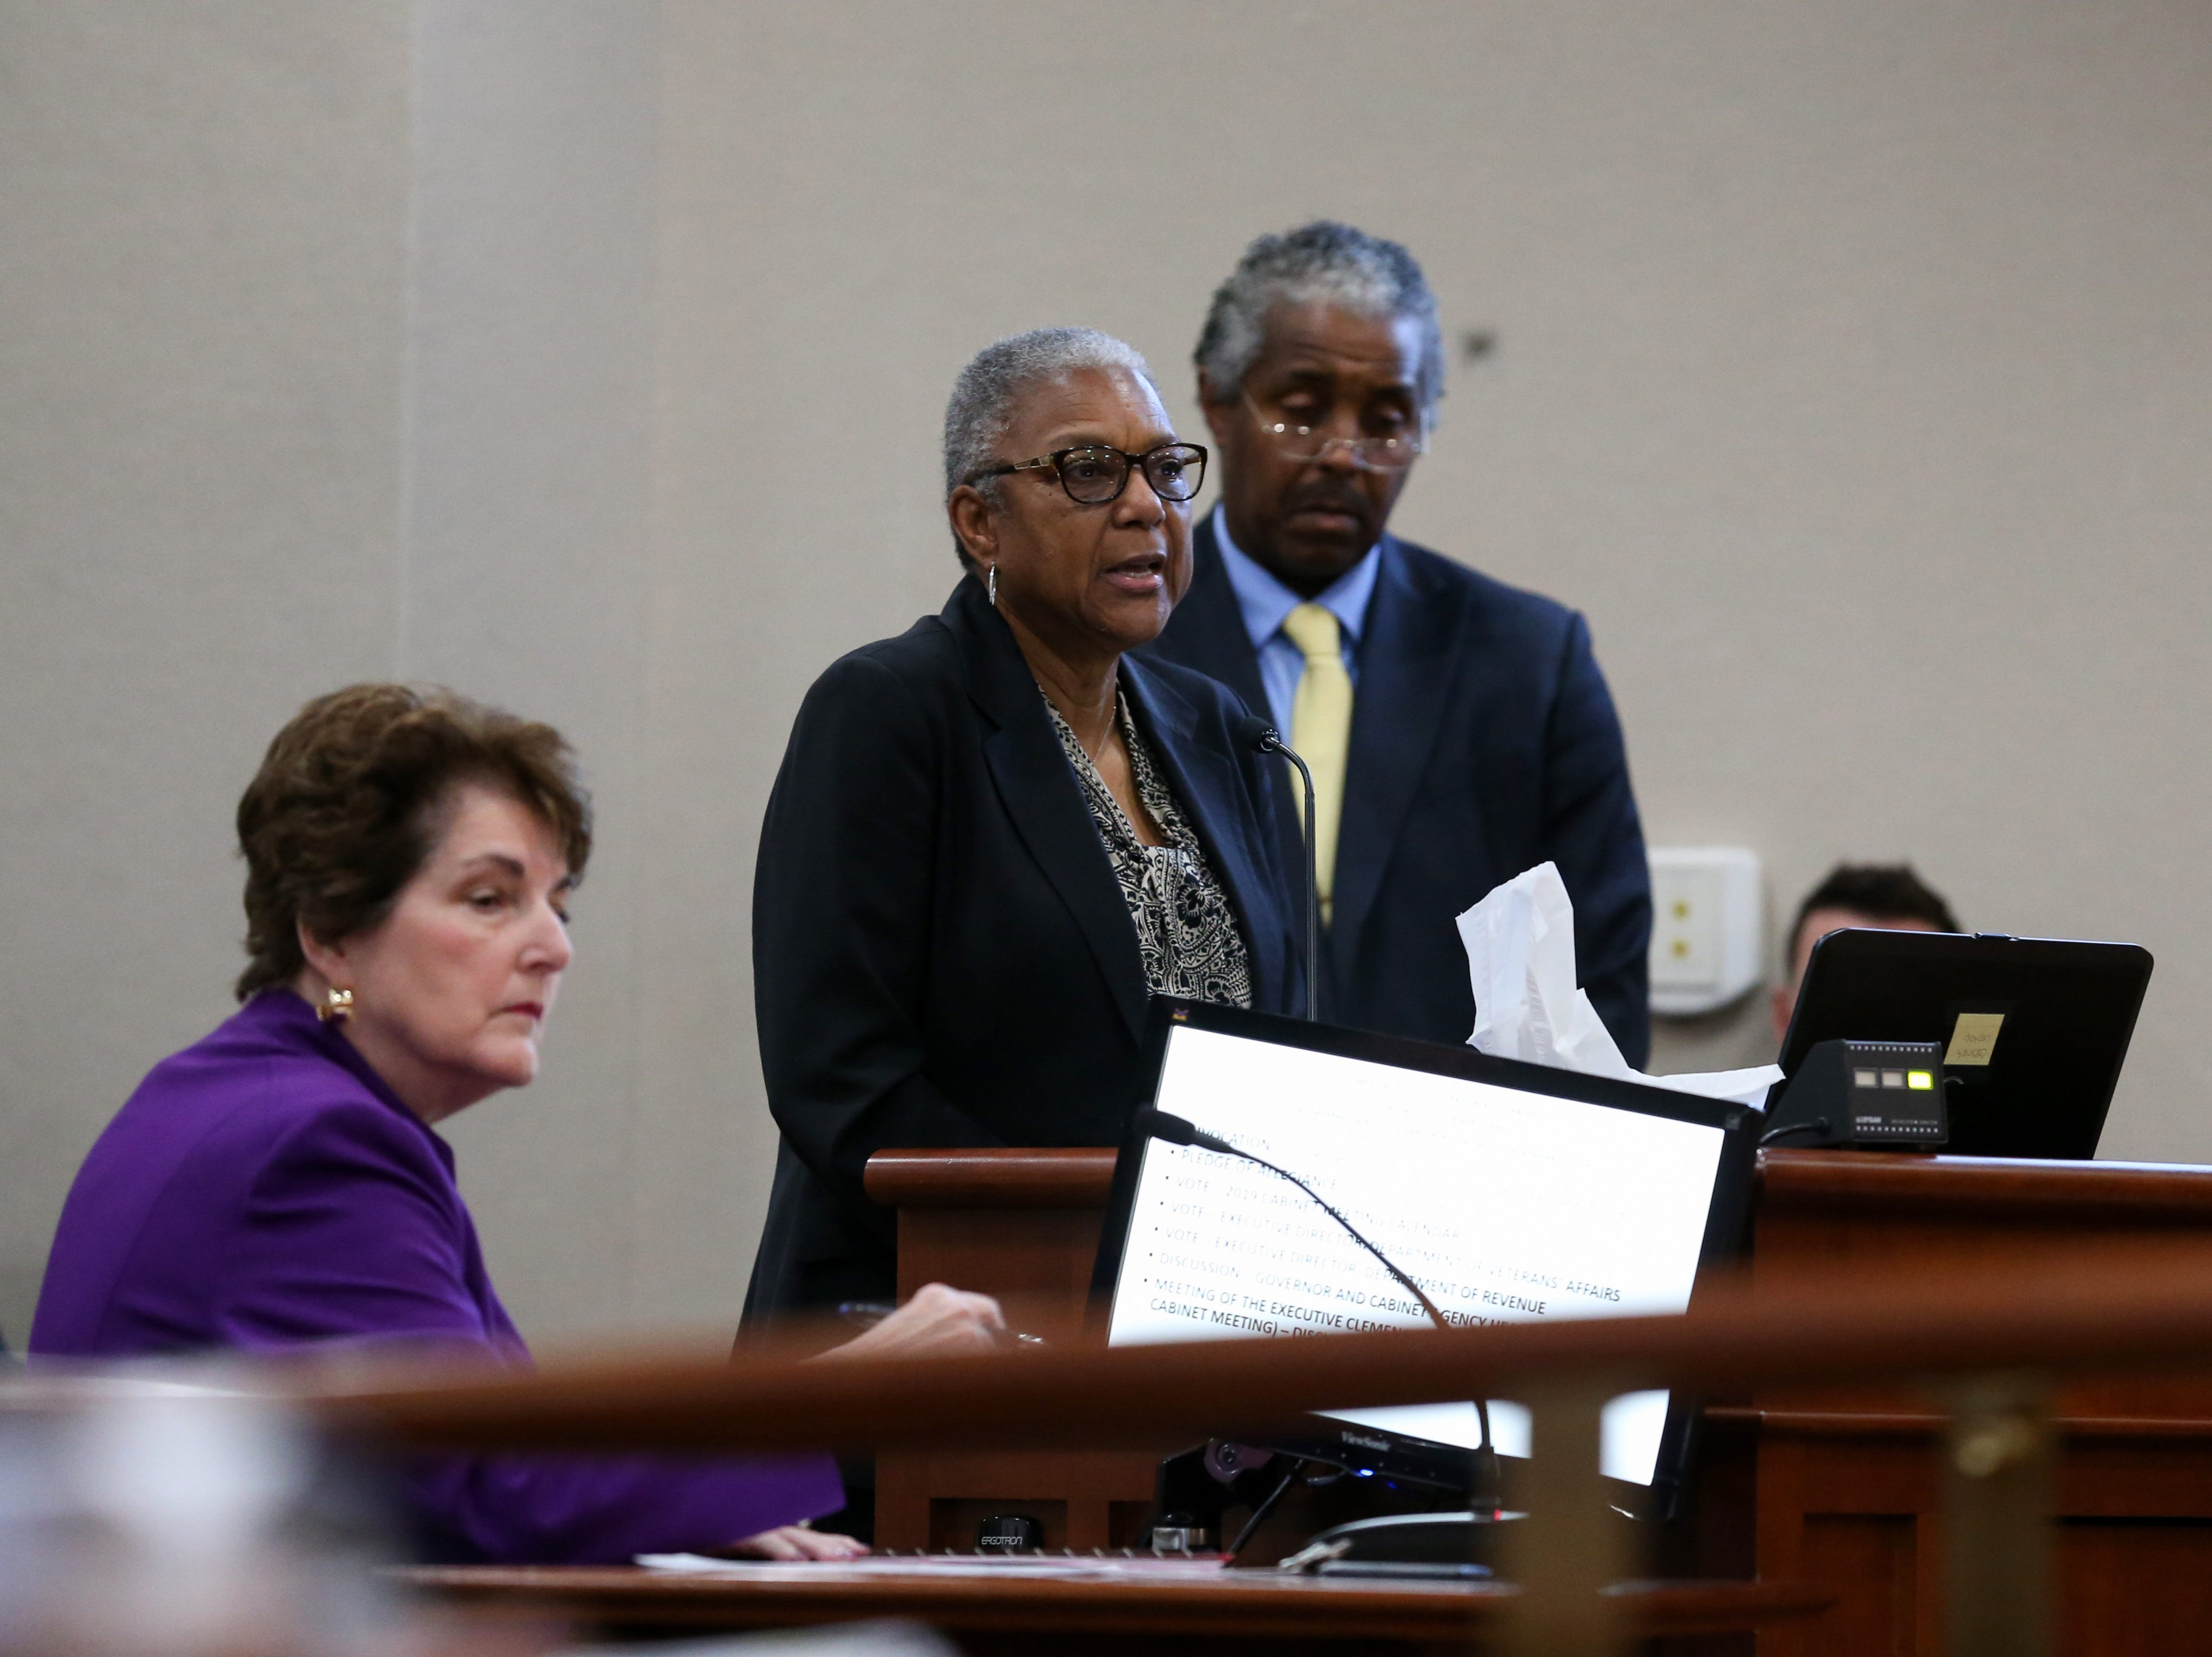 Carol (Greenlee) Crawley, daughter of Charles Greenlee, one of the Groveland Four, gives a statement during a clemency board hearing where the Groveland Four were pardoned Friday, Jan. 11, 2019.